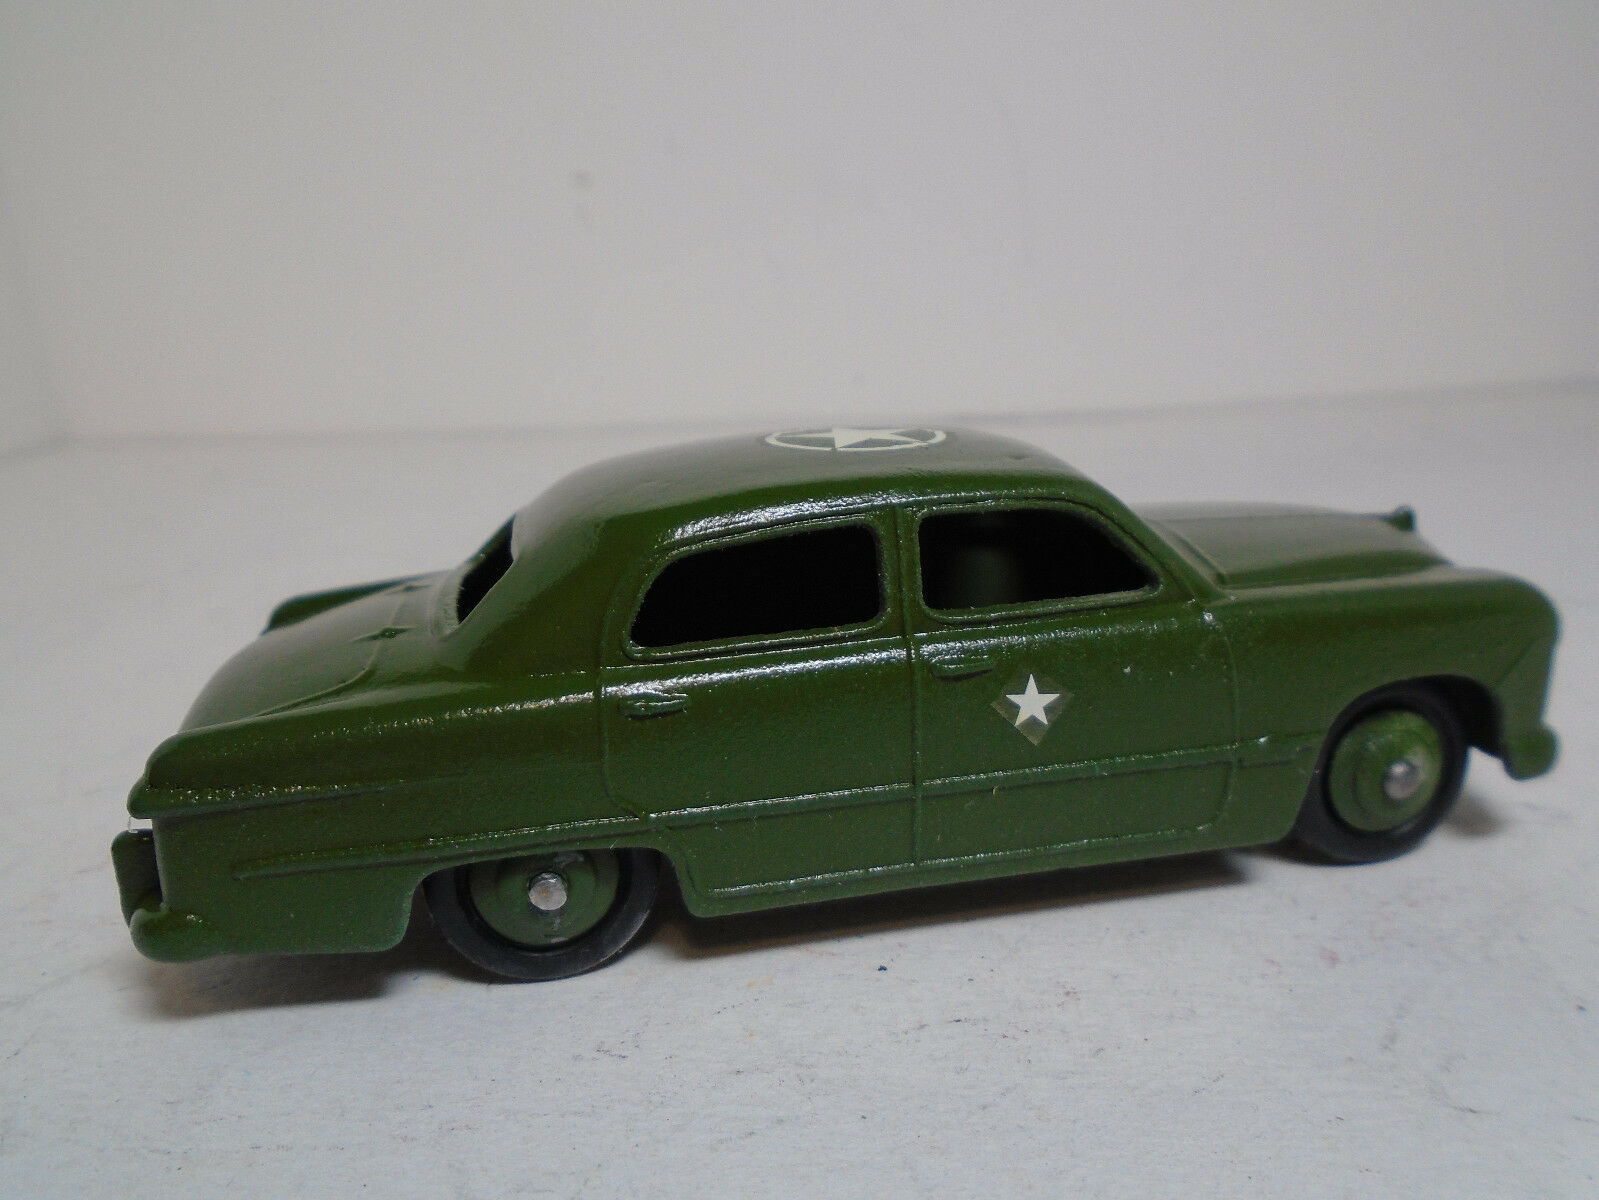 Vintage Meccano Ltd. Dinky Military Toy Toy Toy Ford Staff Car 1950's Restored 2NM  8d8acd